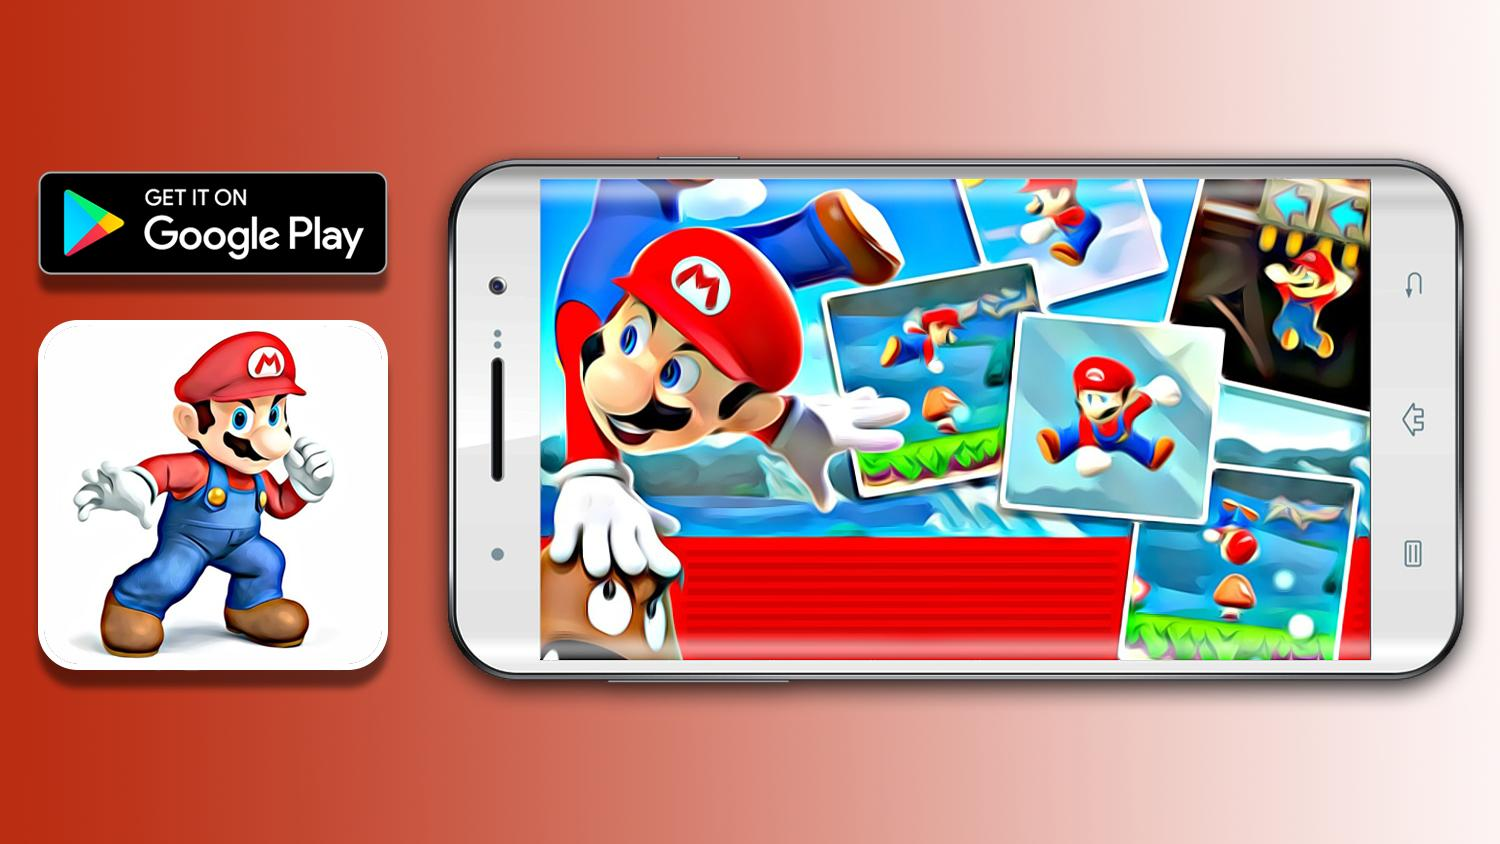 Cheat Super Mario Cheats And Tips YTXTY Run World for Android - APK